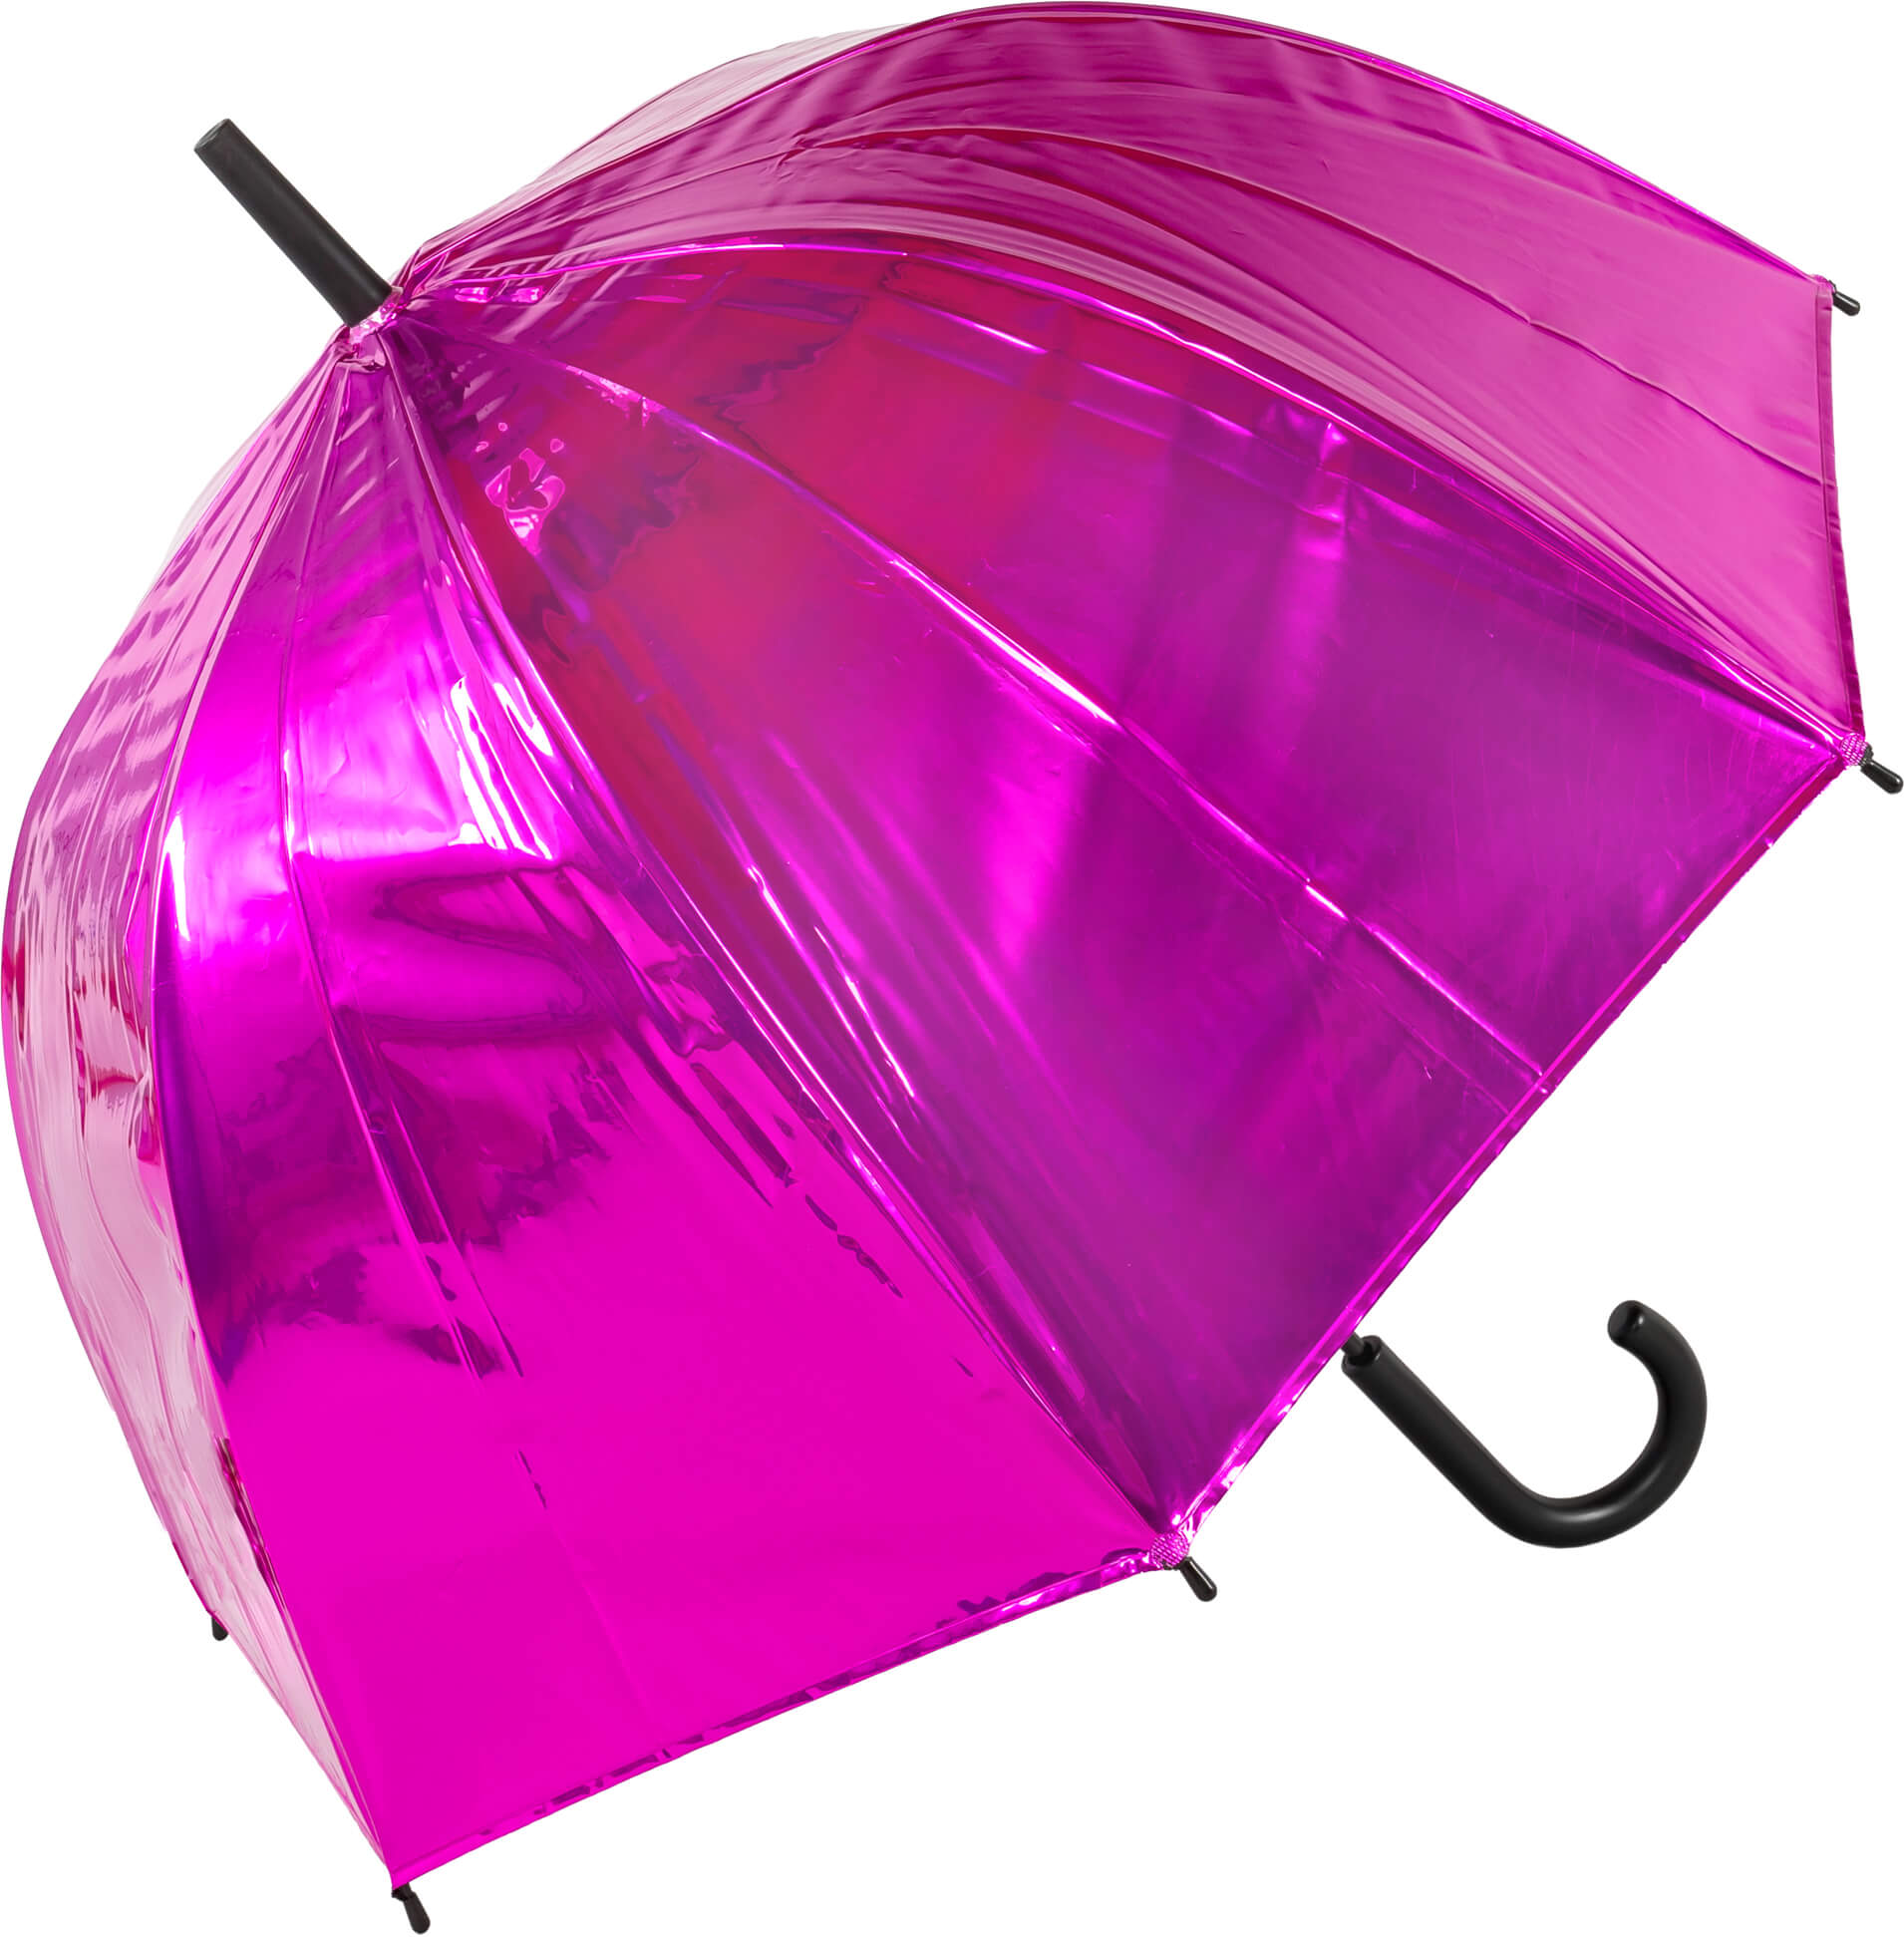 Metallic Pink Dome Umbrella Auto Open (18021P)